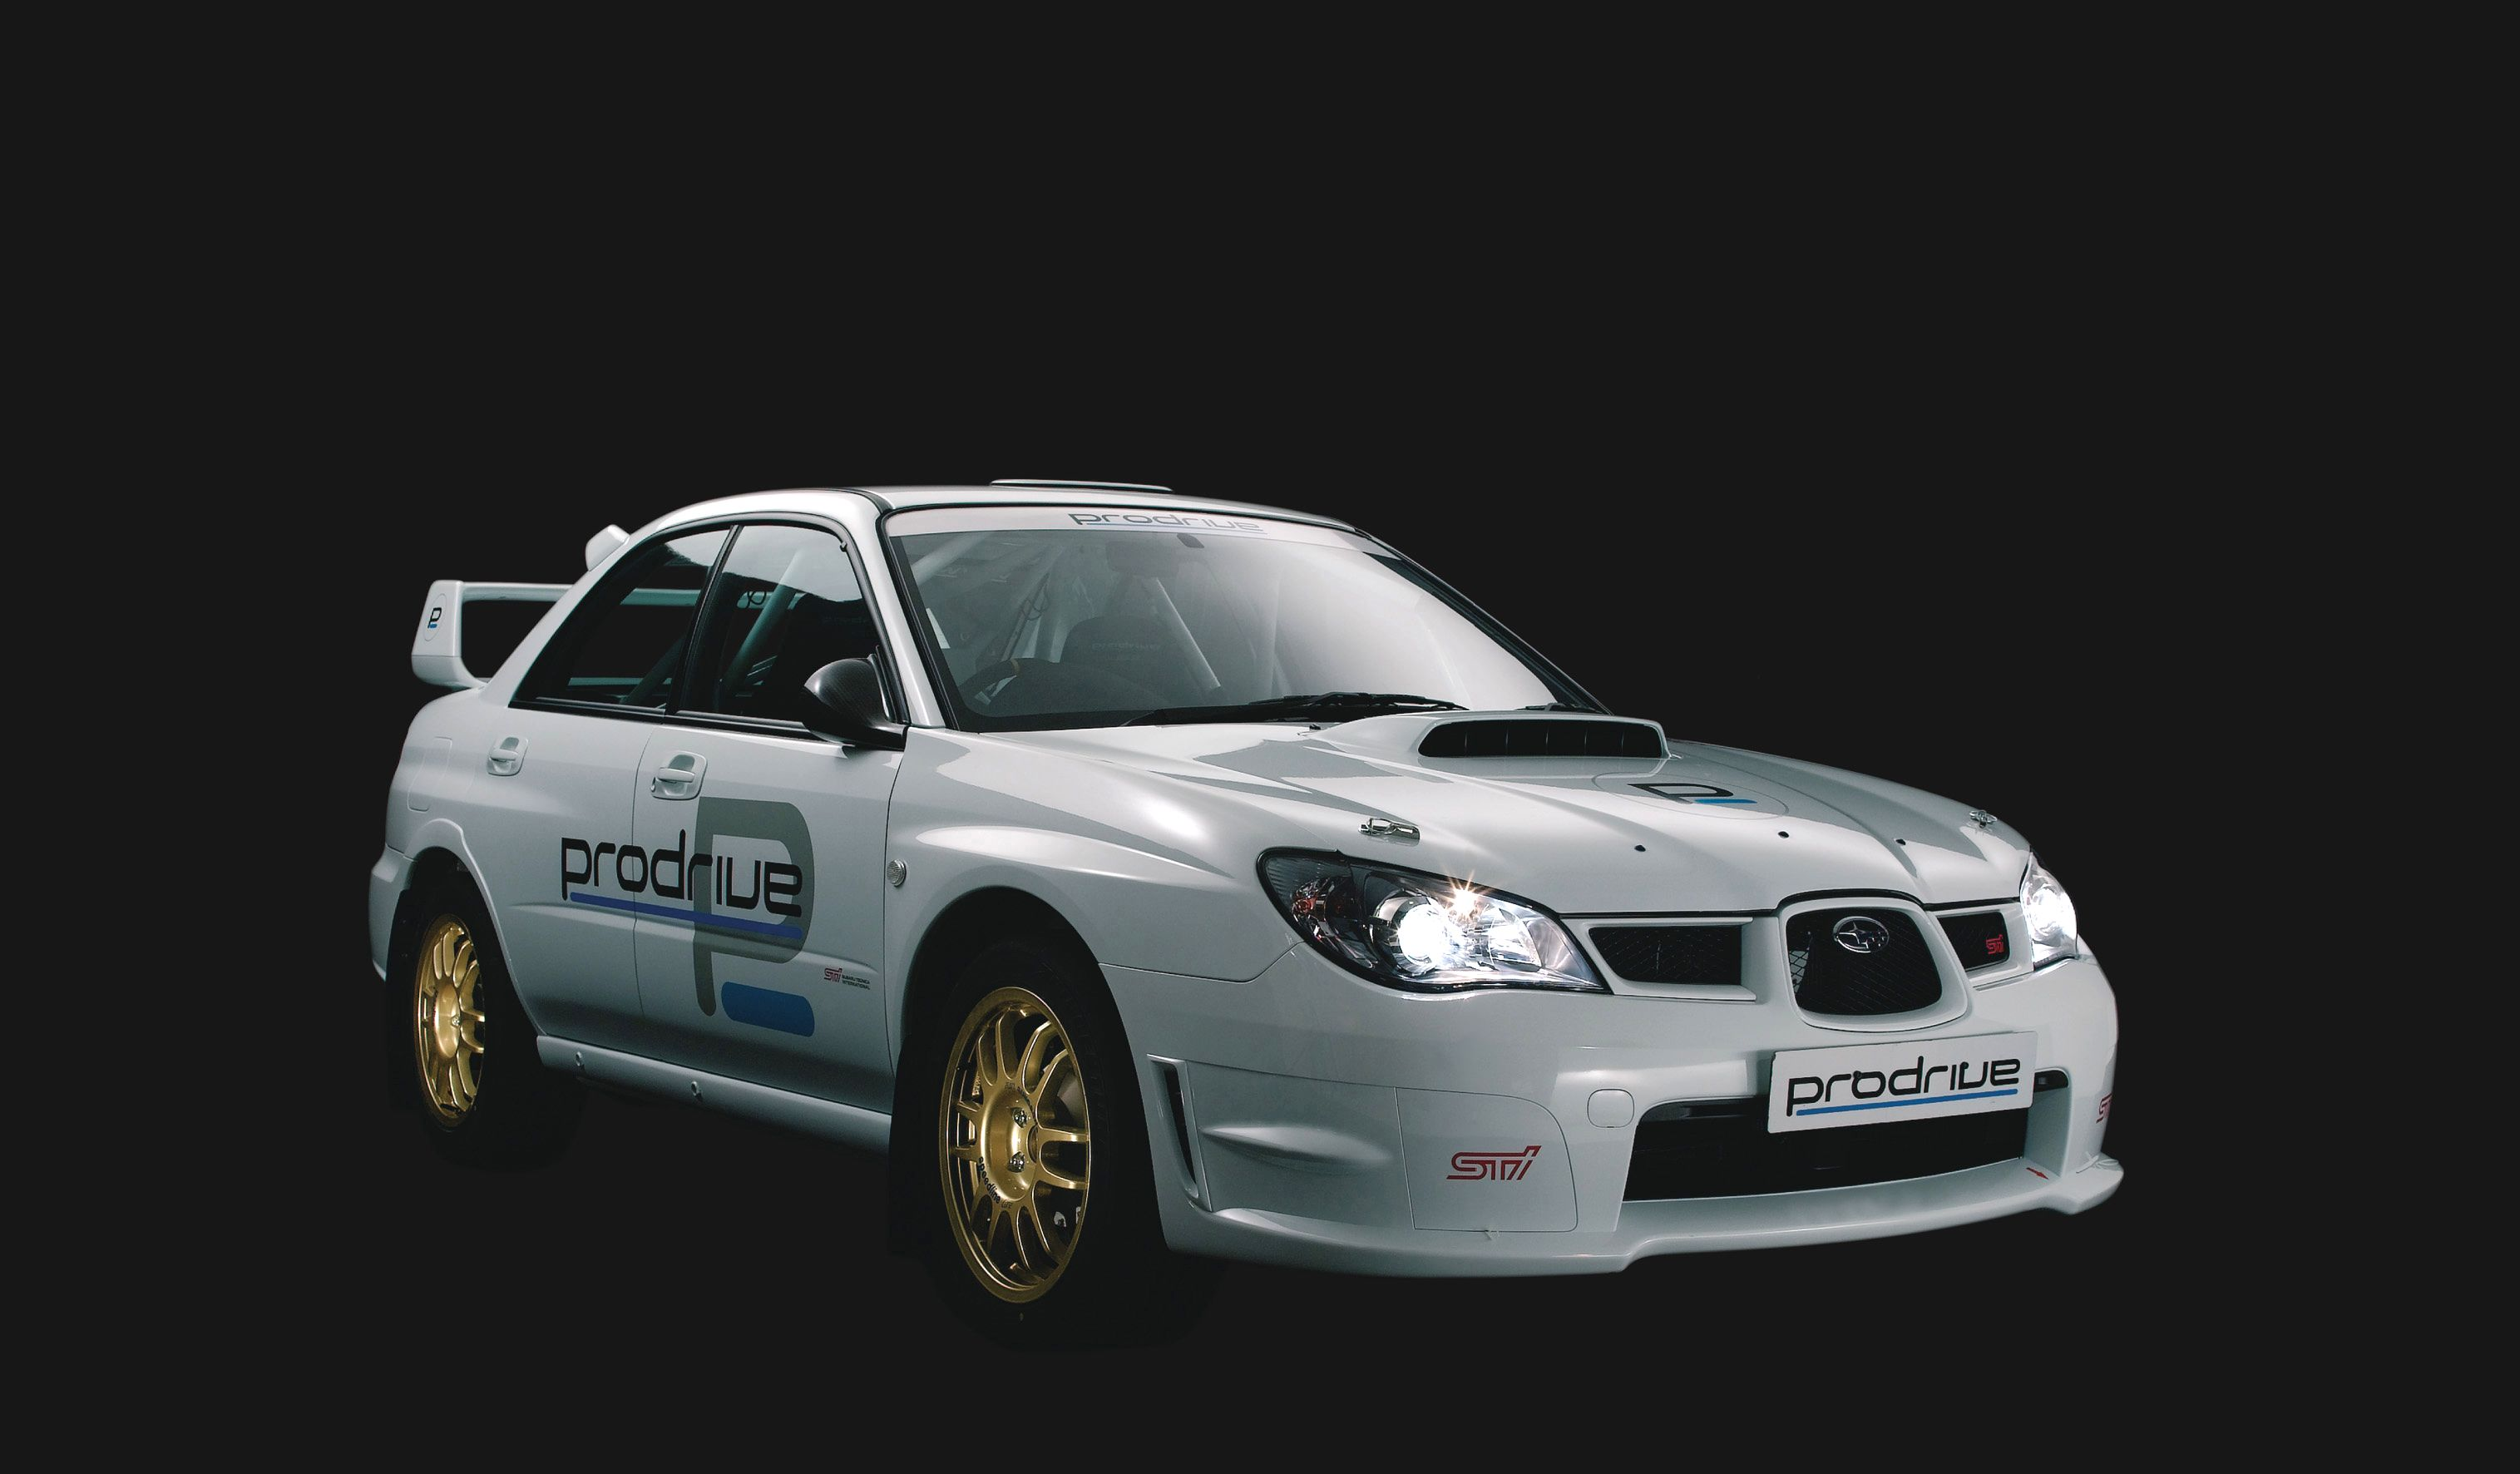 ef69dfff2fd71a0c2872933967f8436a Take A Look About 2002 Subaru Impreza Wrx Specs